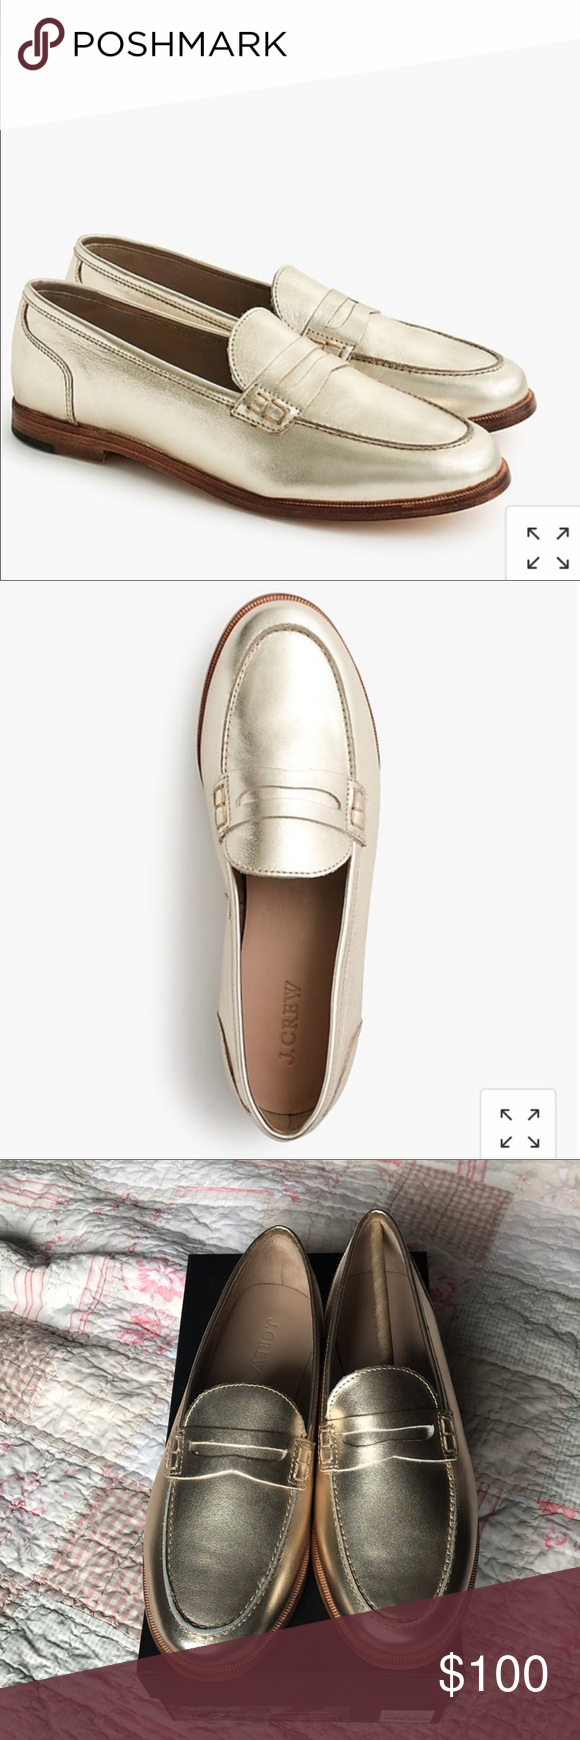 93649960937 J. Crew Gold Nora Penny Loafers - never worn Beautiful gold penny loafers.  Brand